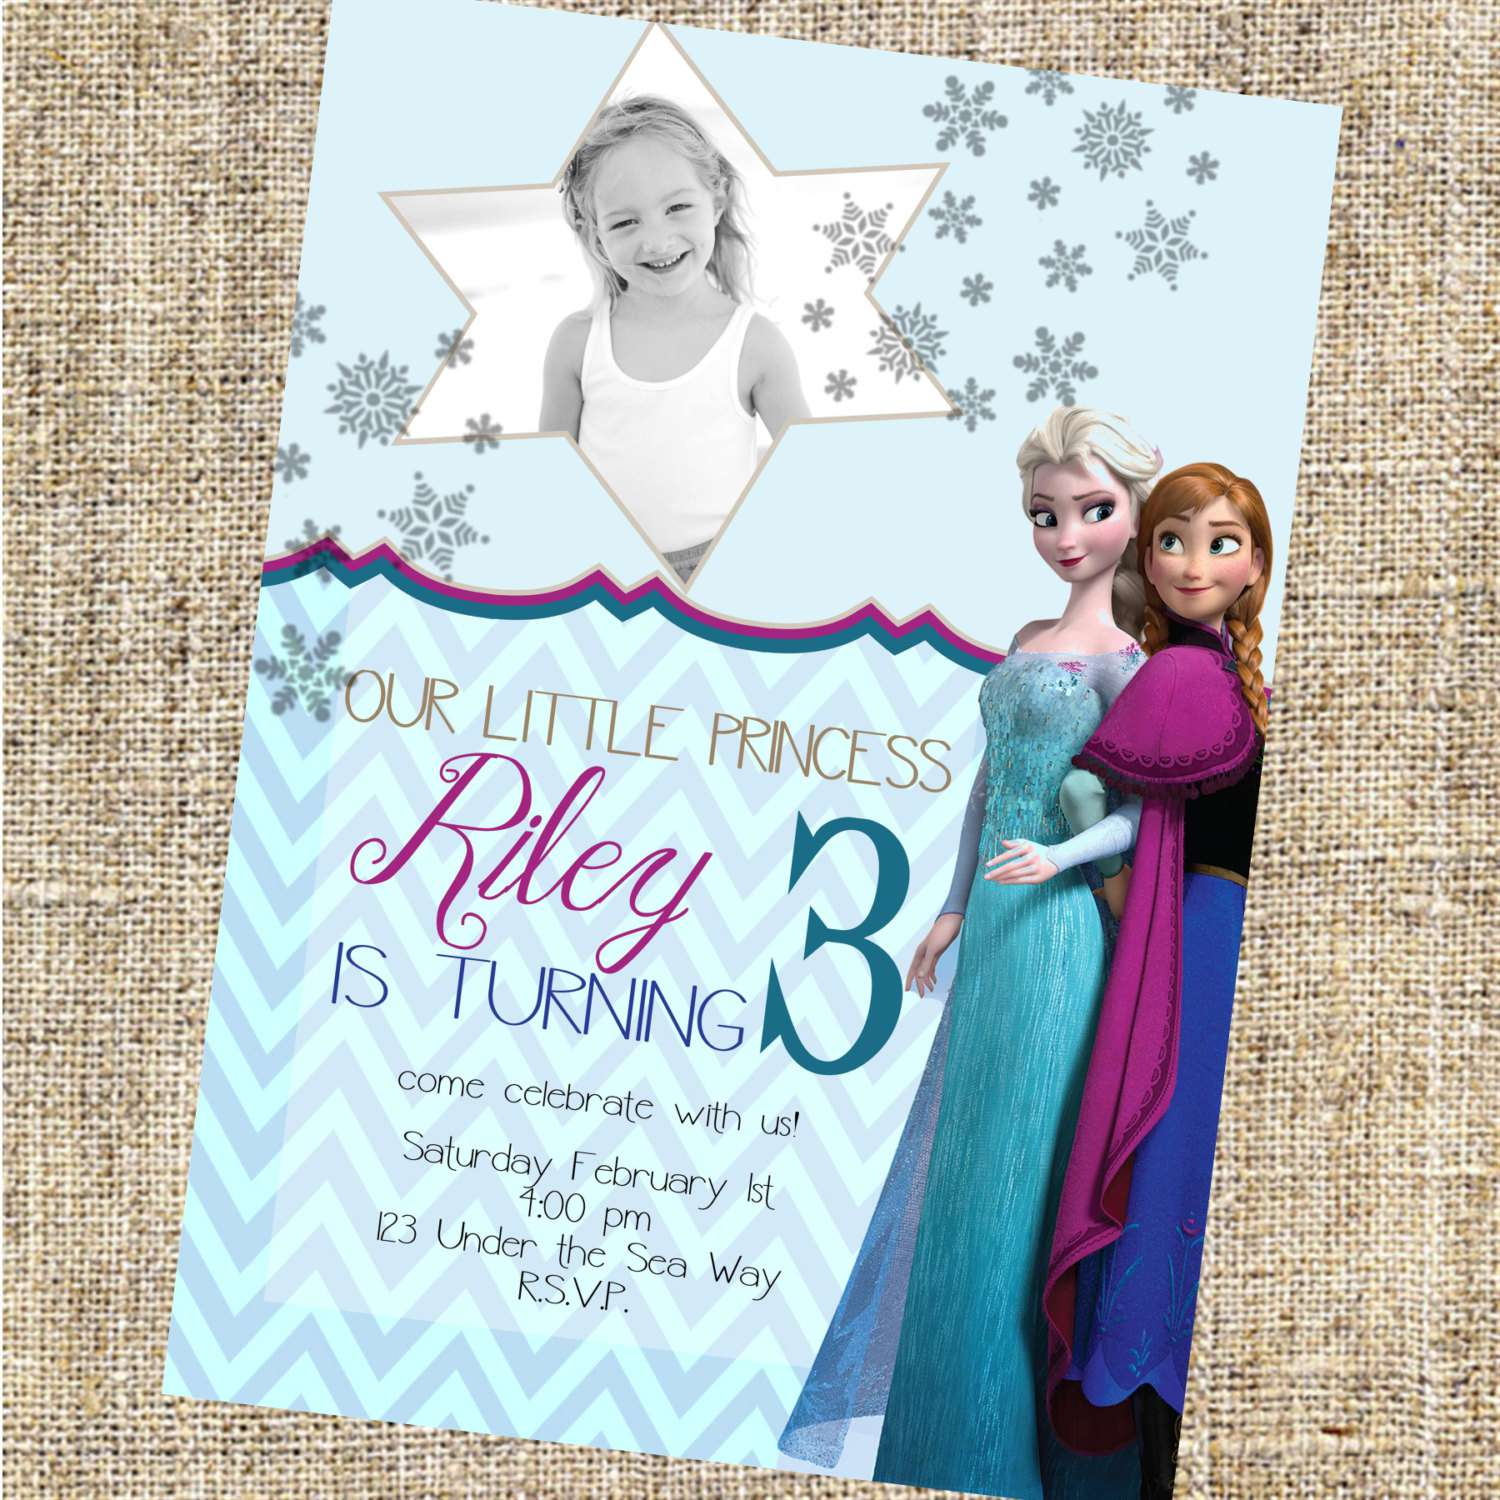 free frozen birthday invitation template ; birthday-wording-frozen-invitations-cards-formal-theme-ideas_formal-frozen-invitations-template-cards-free-printabl-on-design-personalized-frozen-birthday-invitations